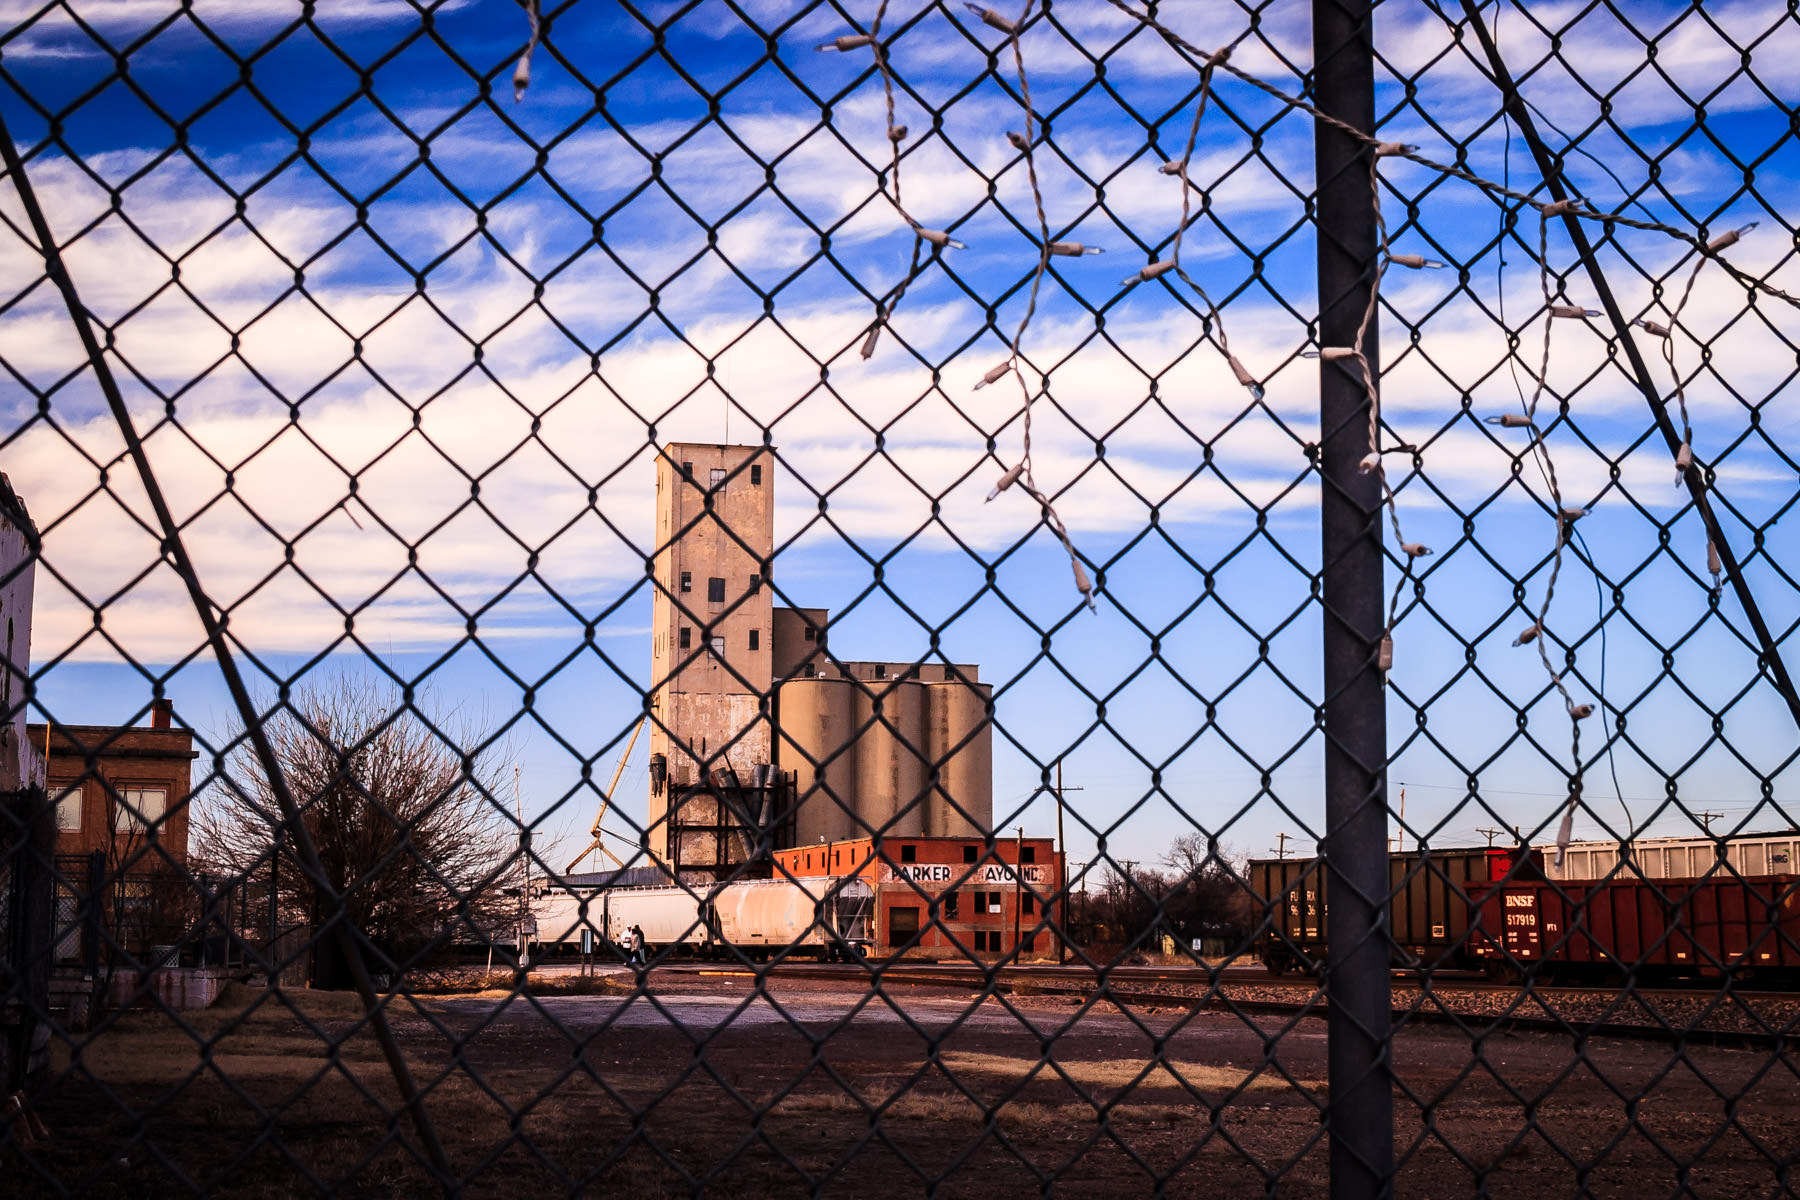 A grain silo seen through a fence on a cold winter day in Wichita Falls, Texas.